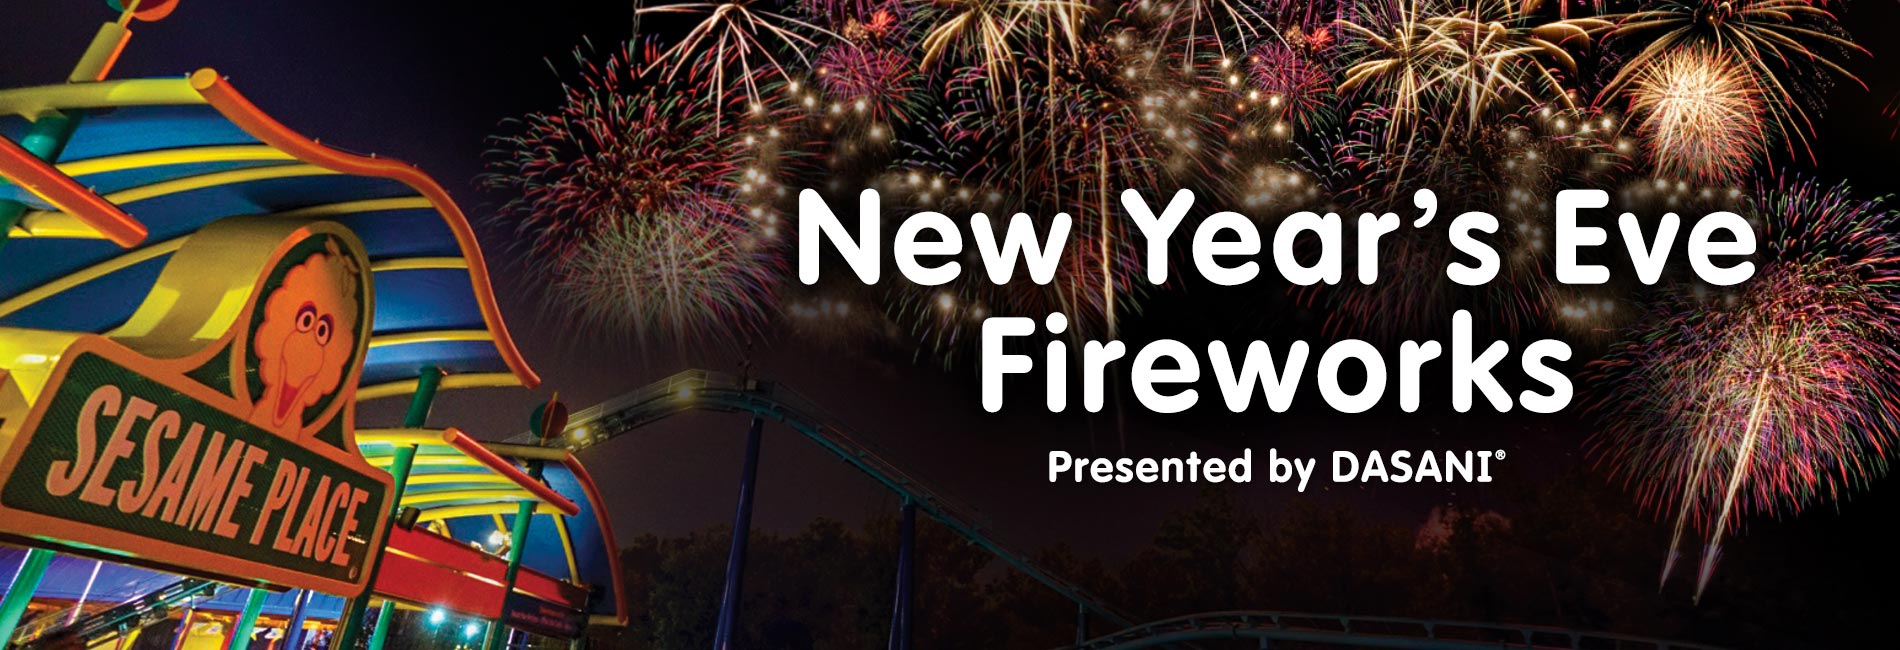 New Years Eve Fireworks at Sesame Place